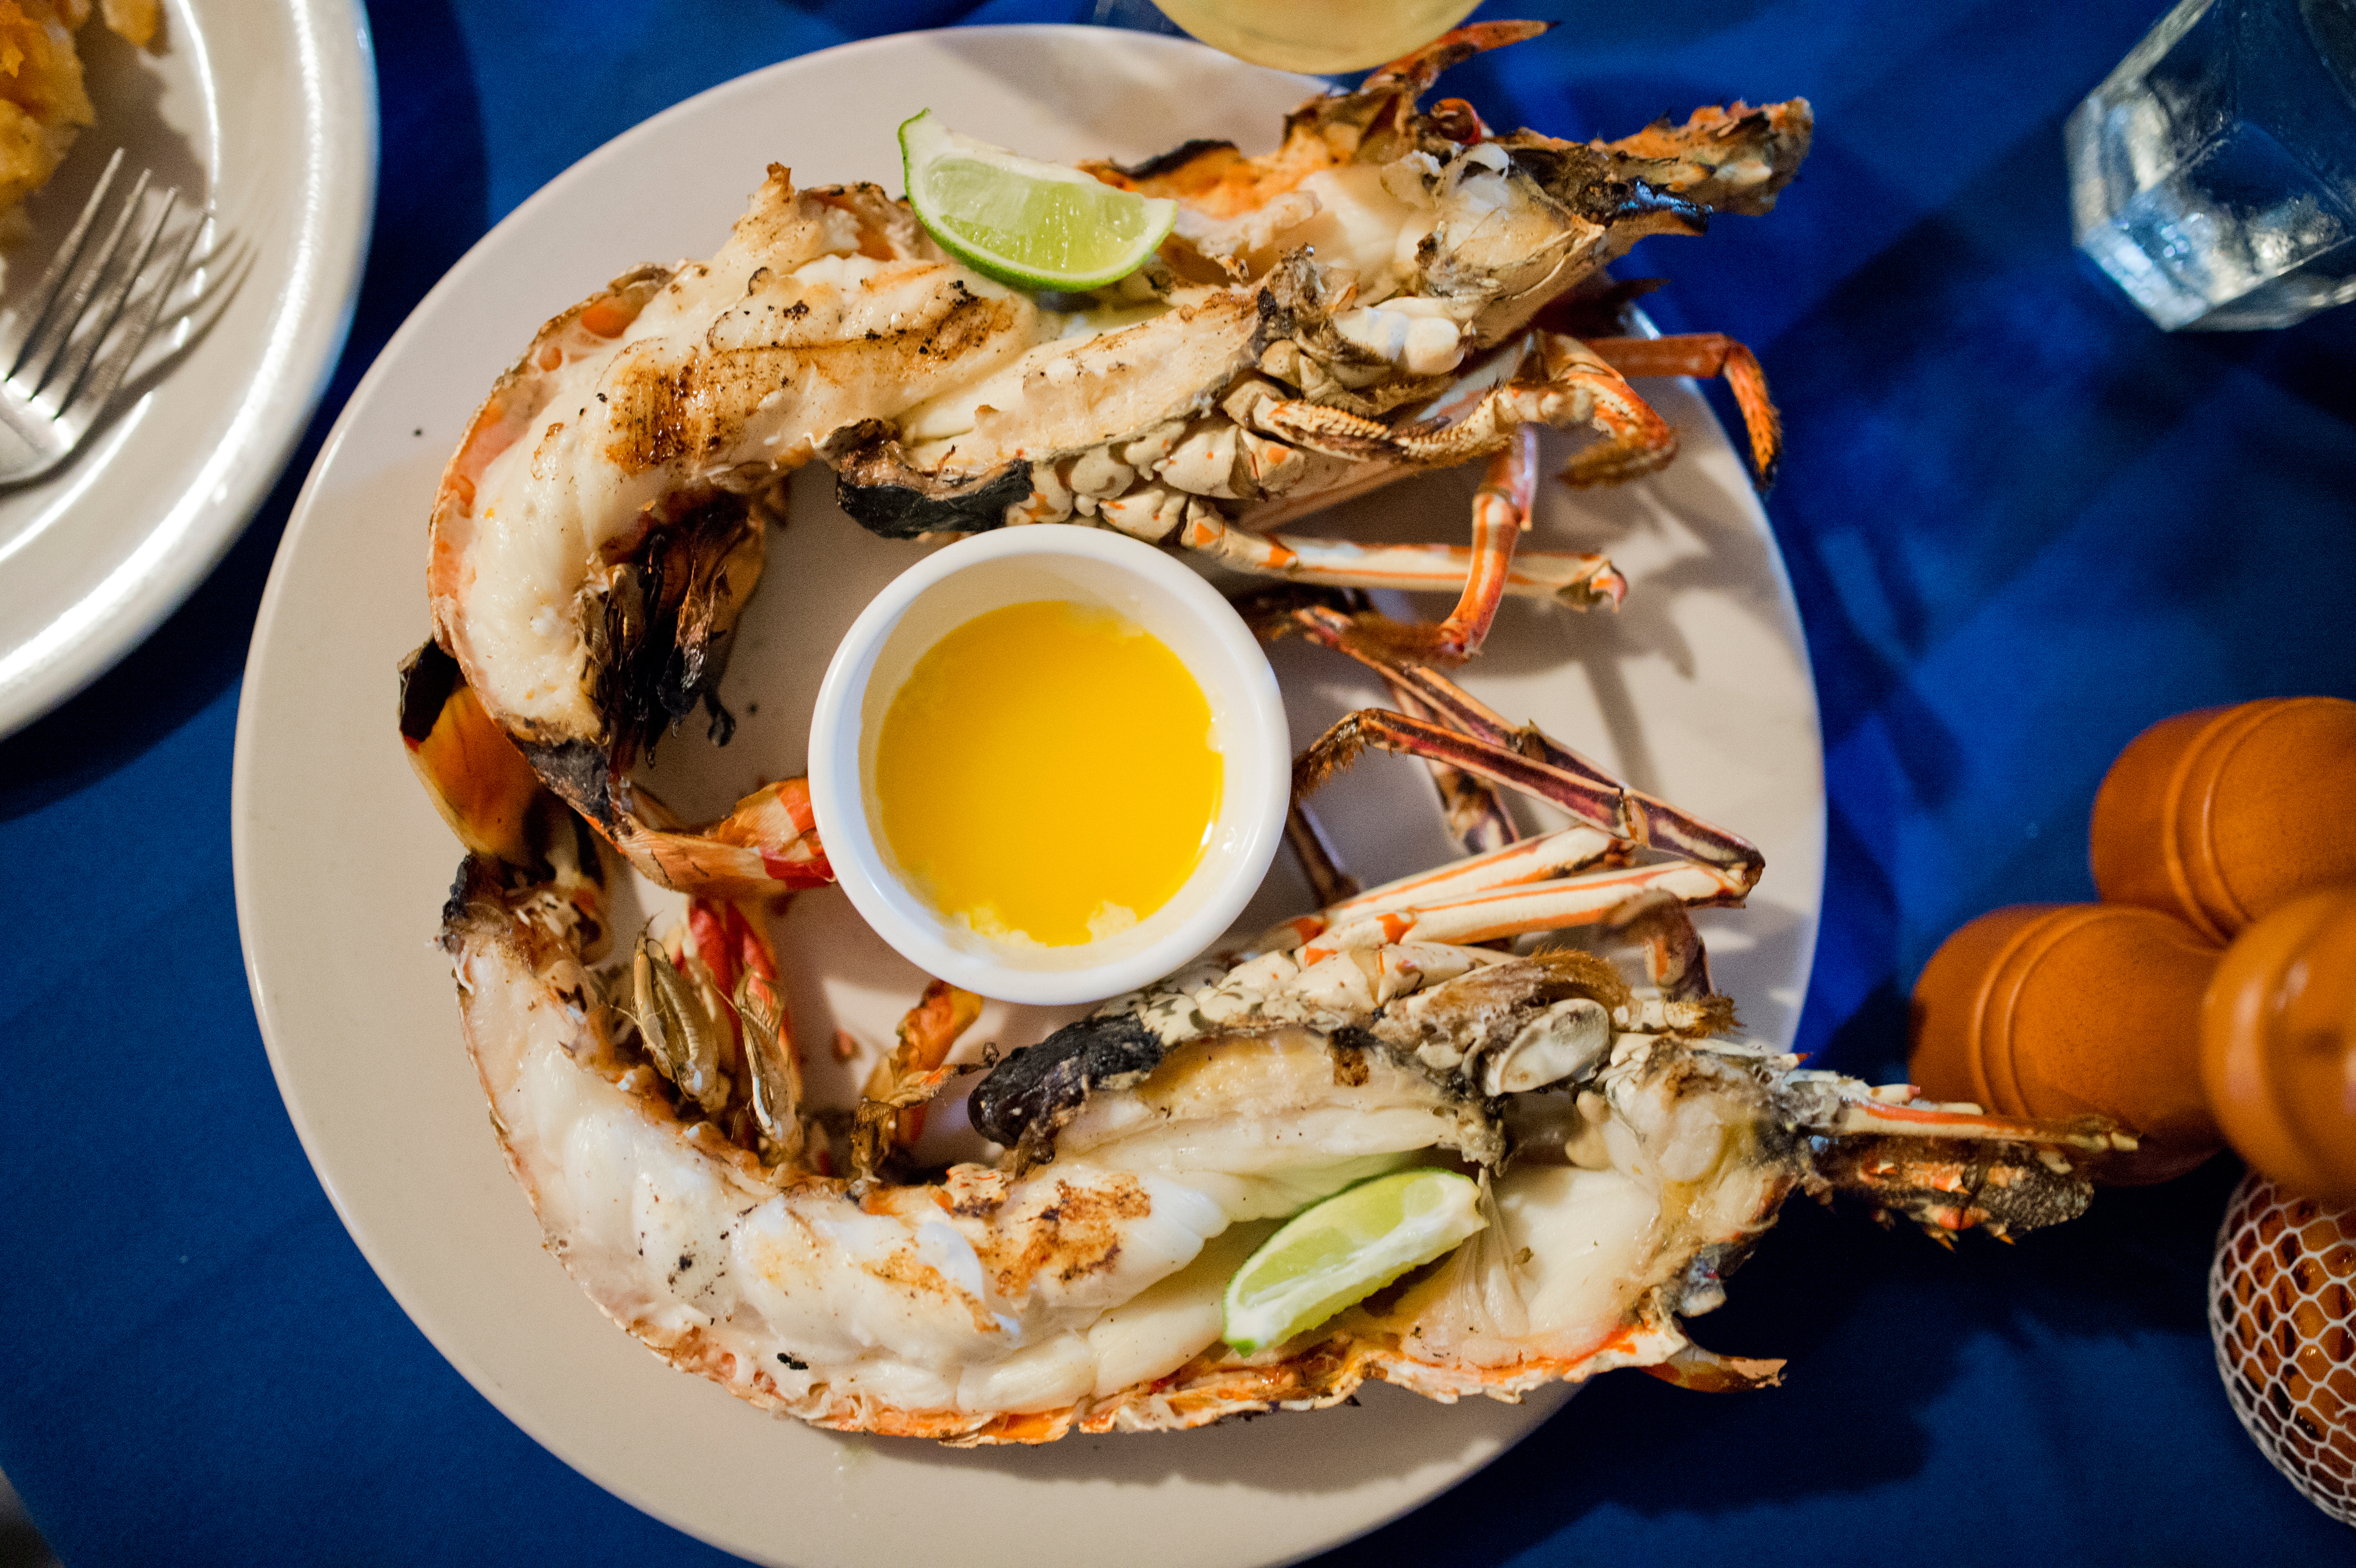 High Angle View Of Crab Served In Plate On Table